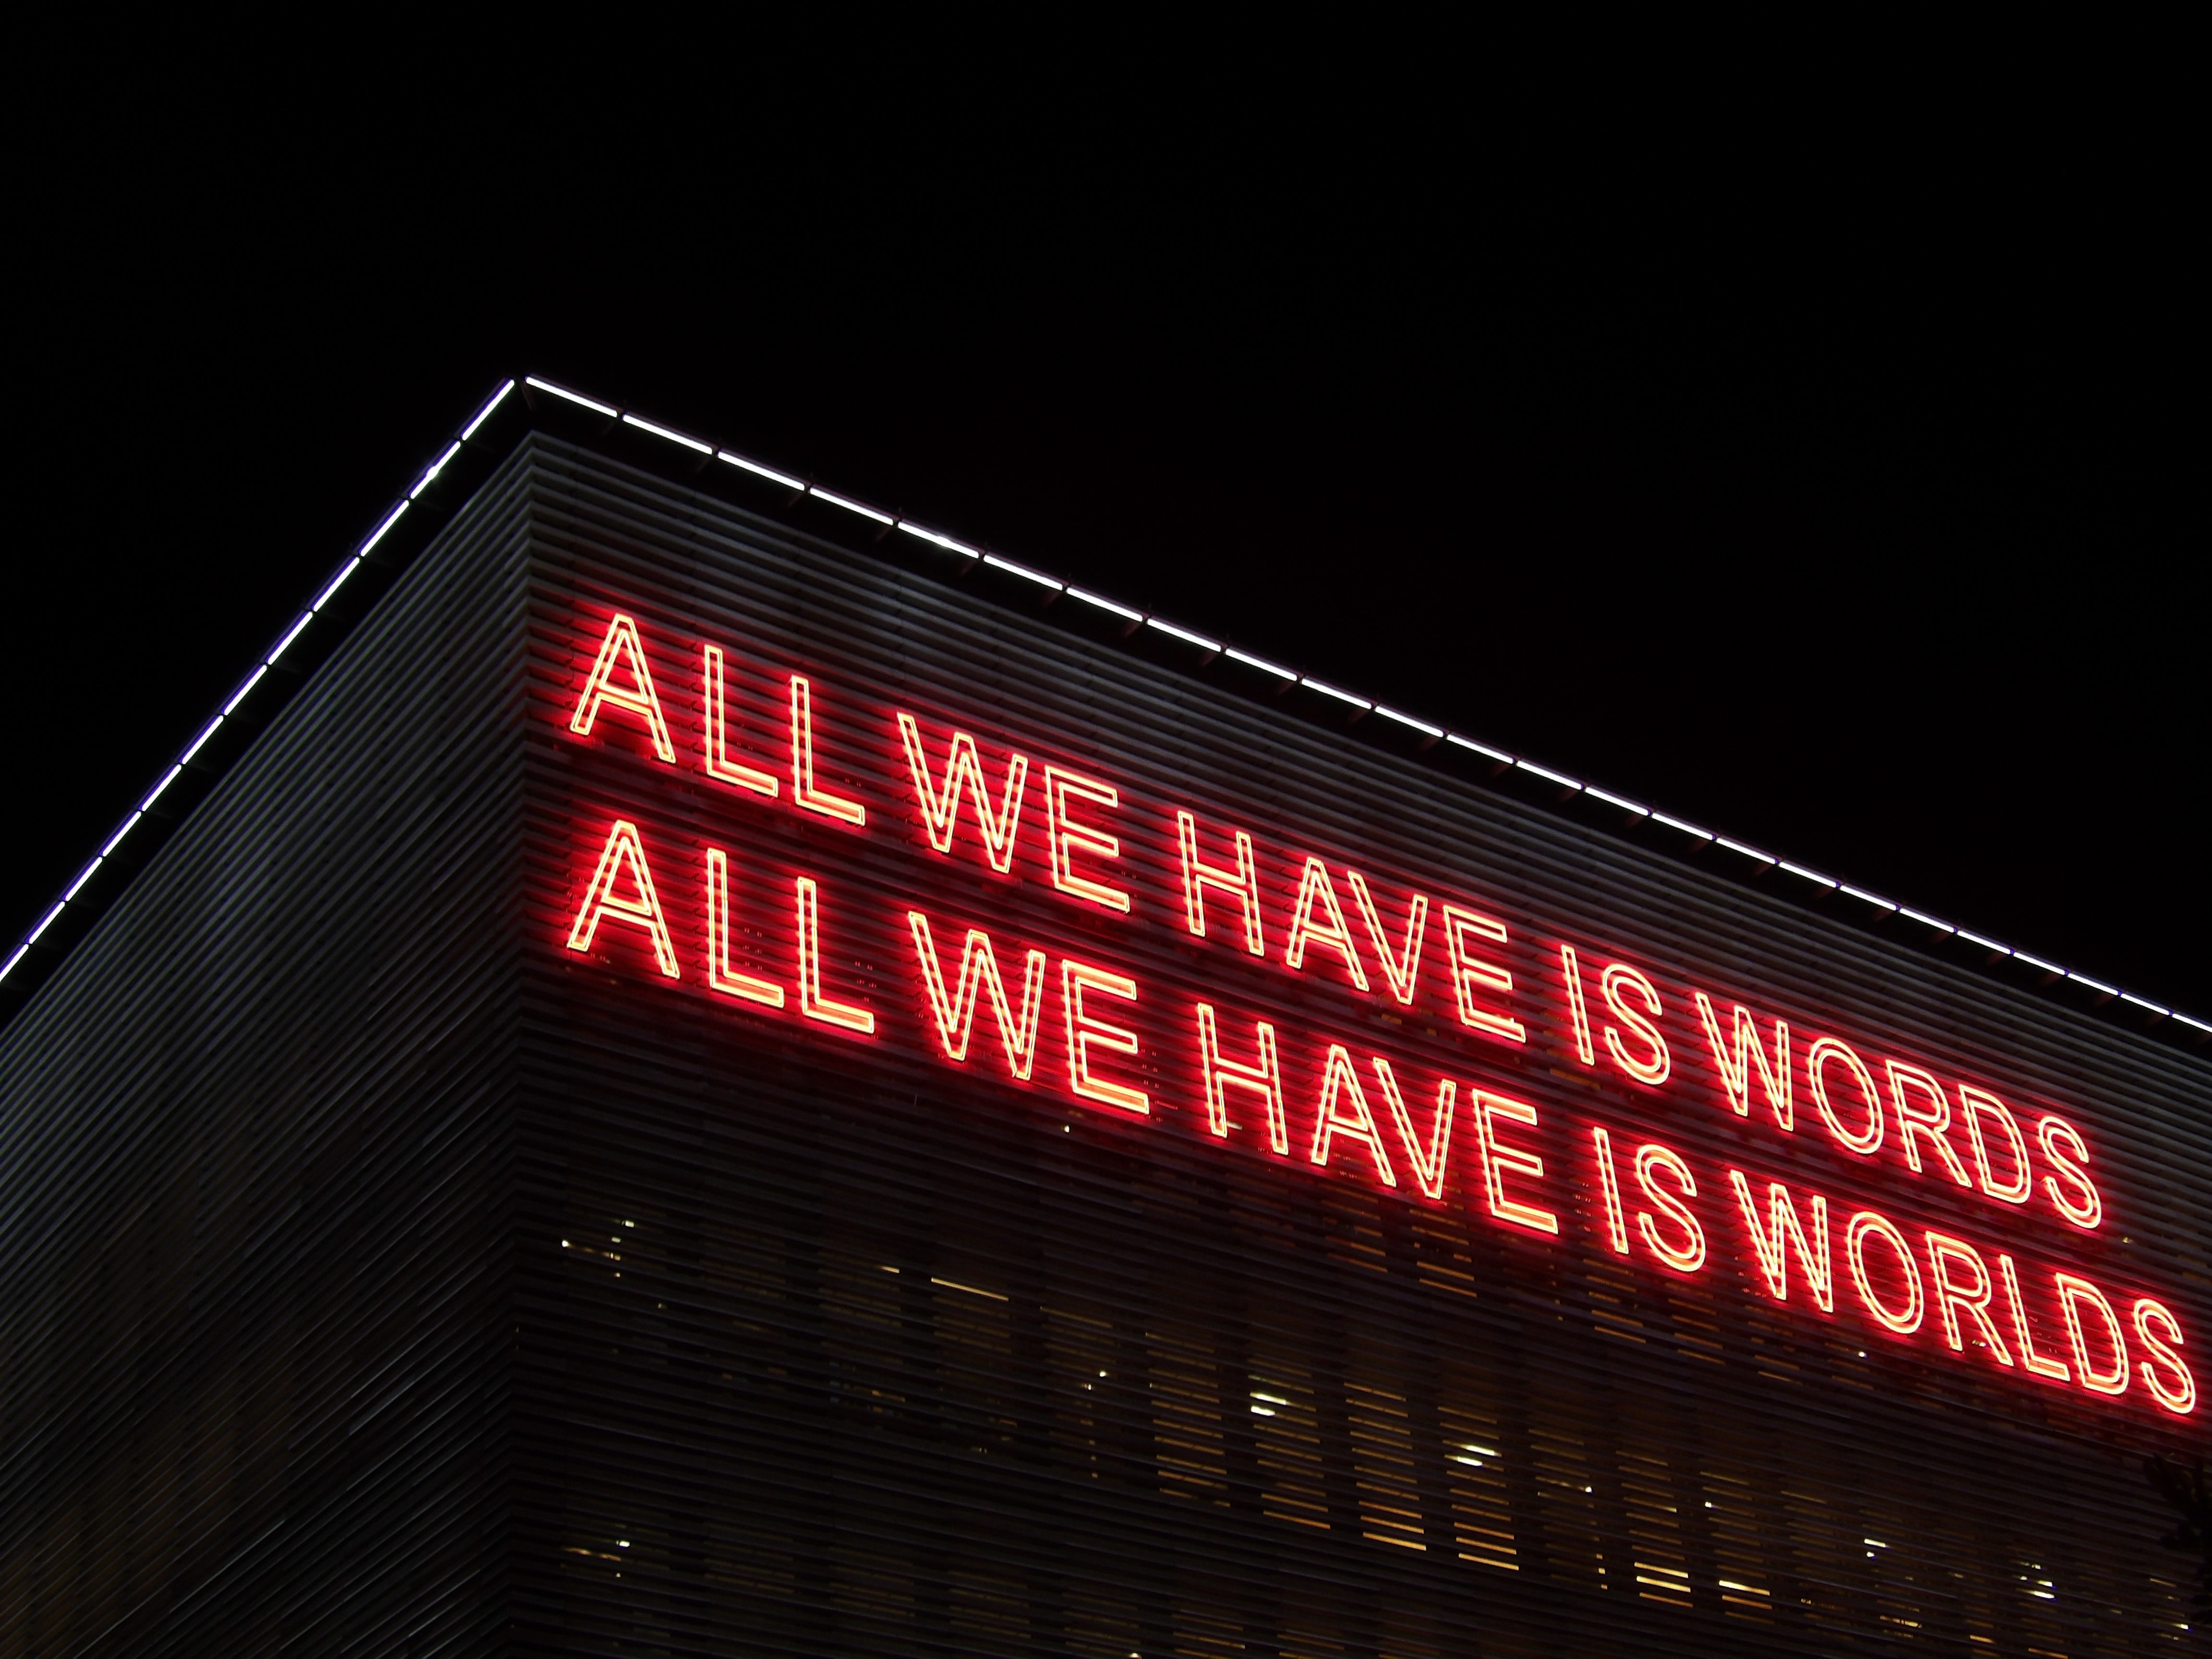 All We Have Is Words All We Have Is Worlds lighted signage at night